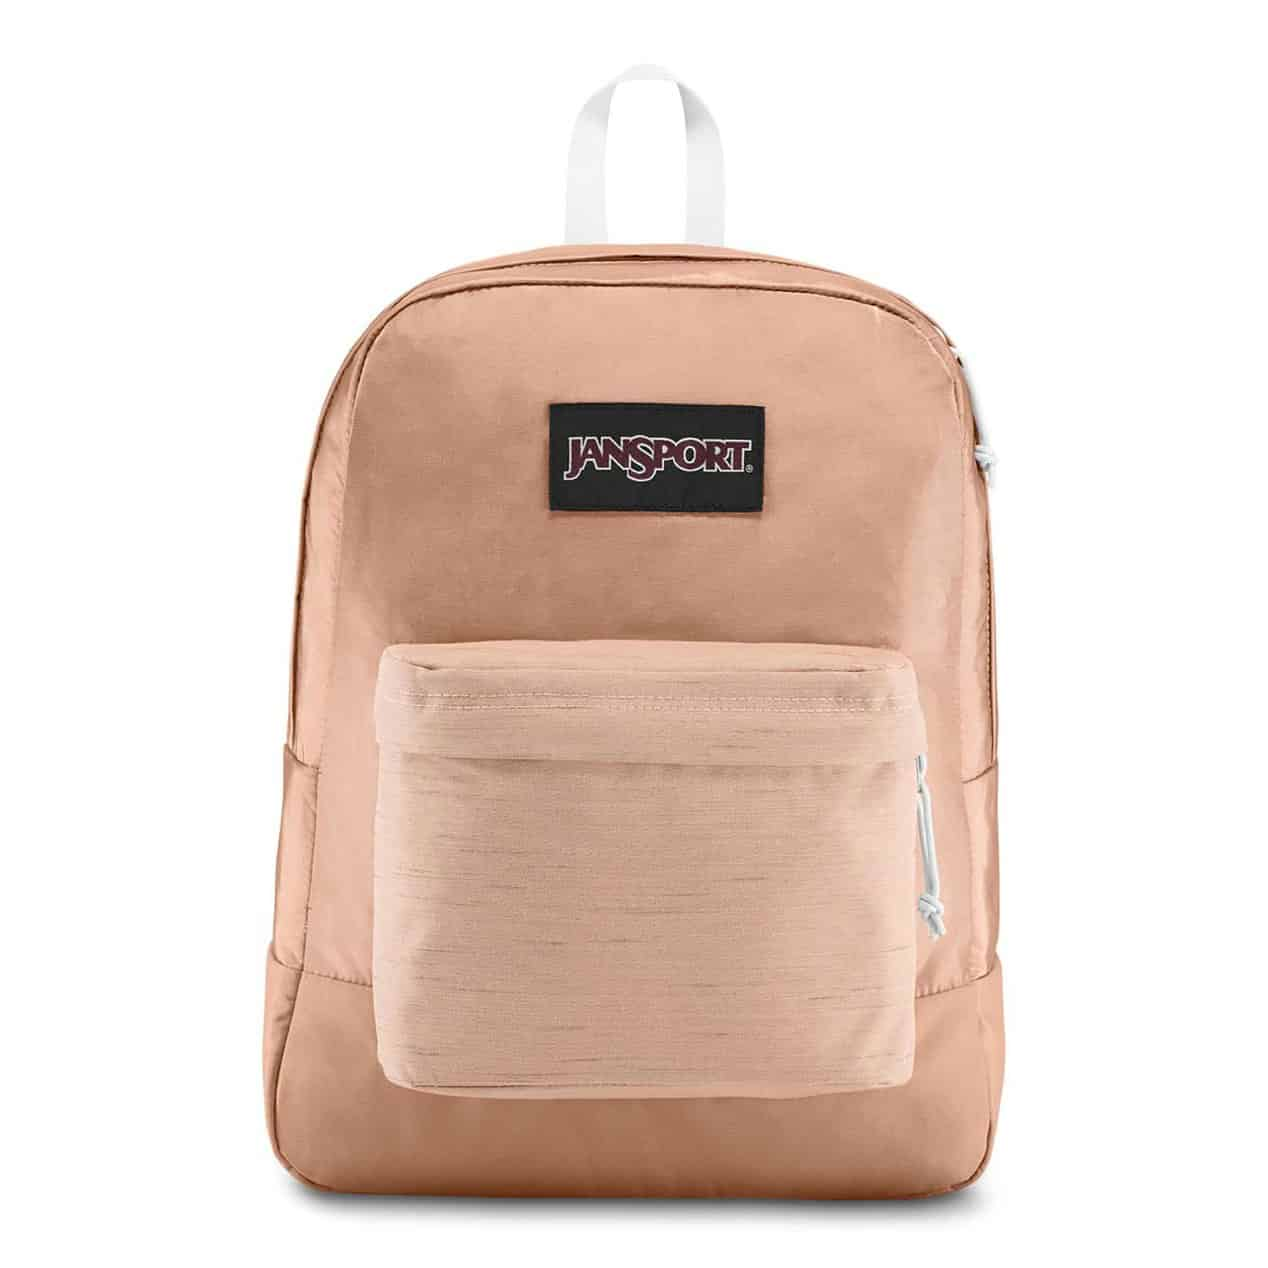 Head Back to School in Style with JanSport Backpacks